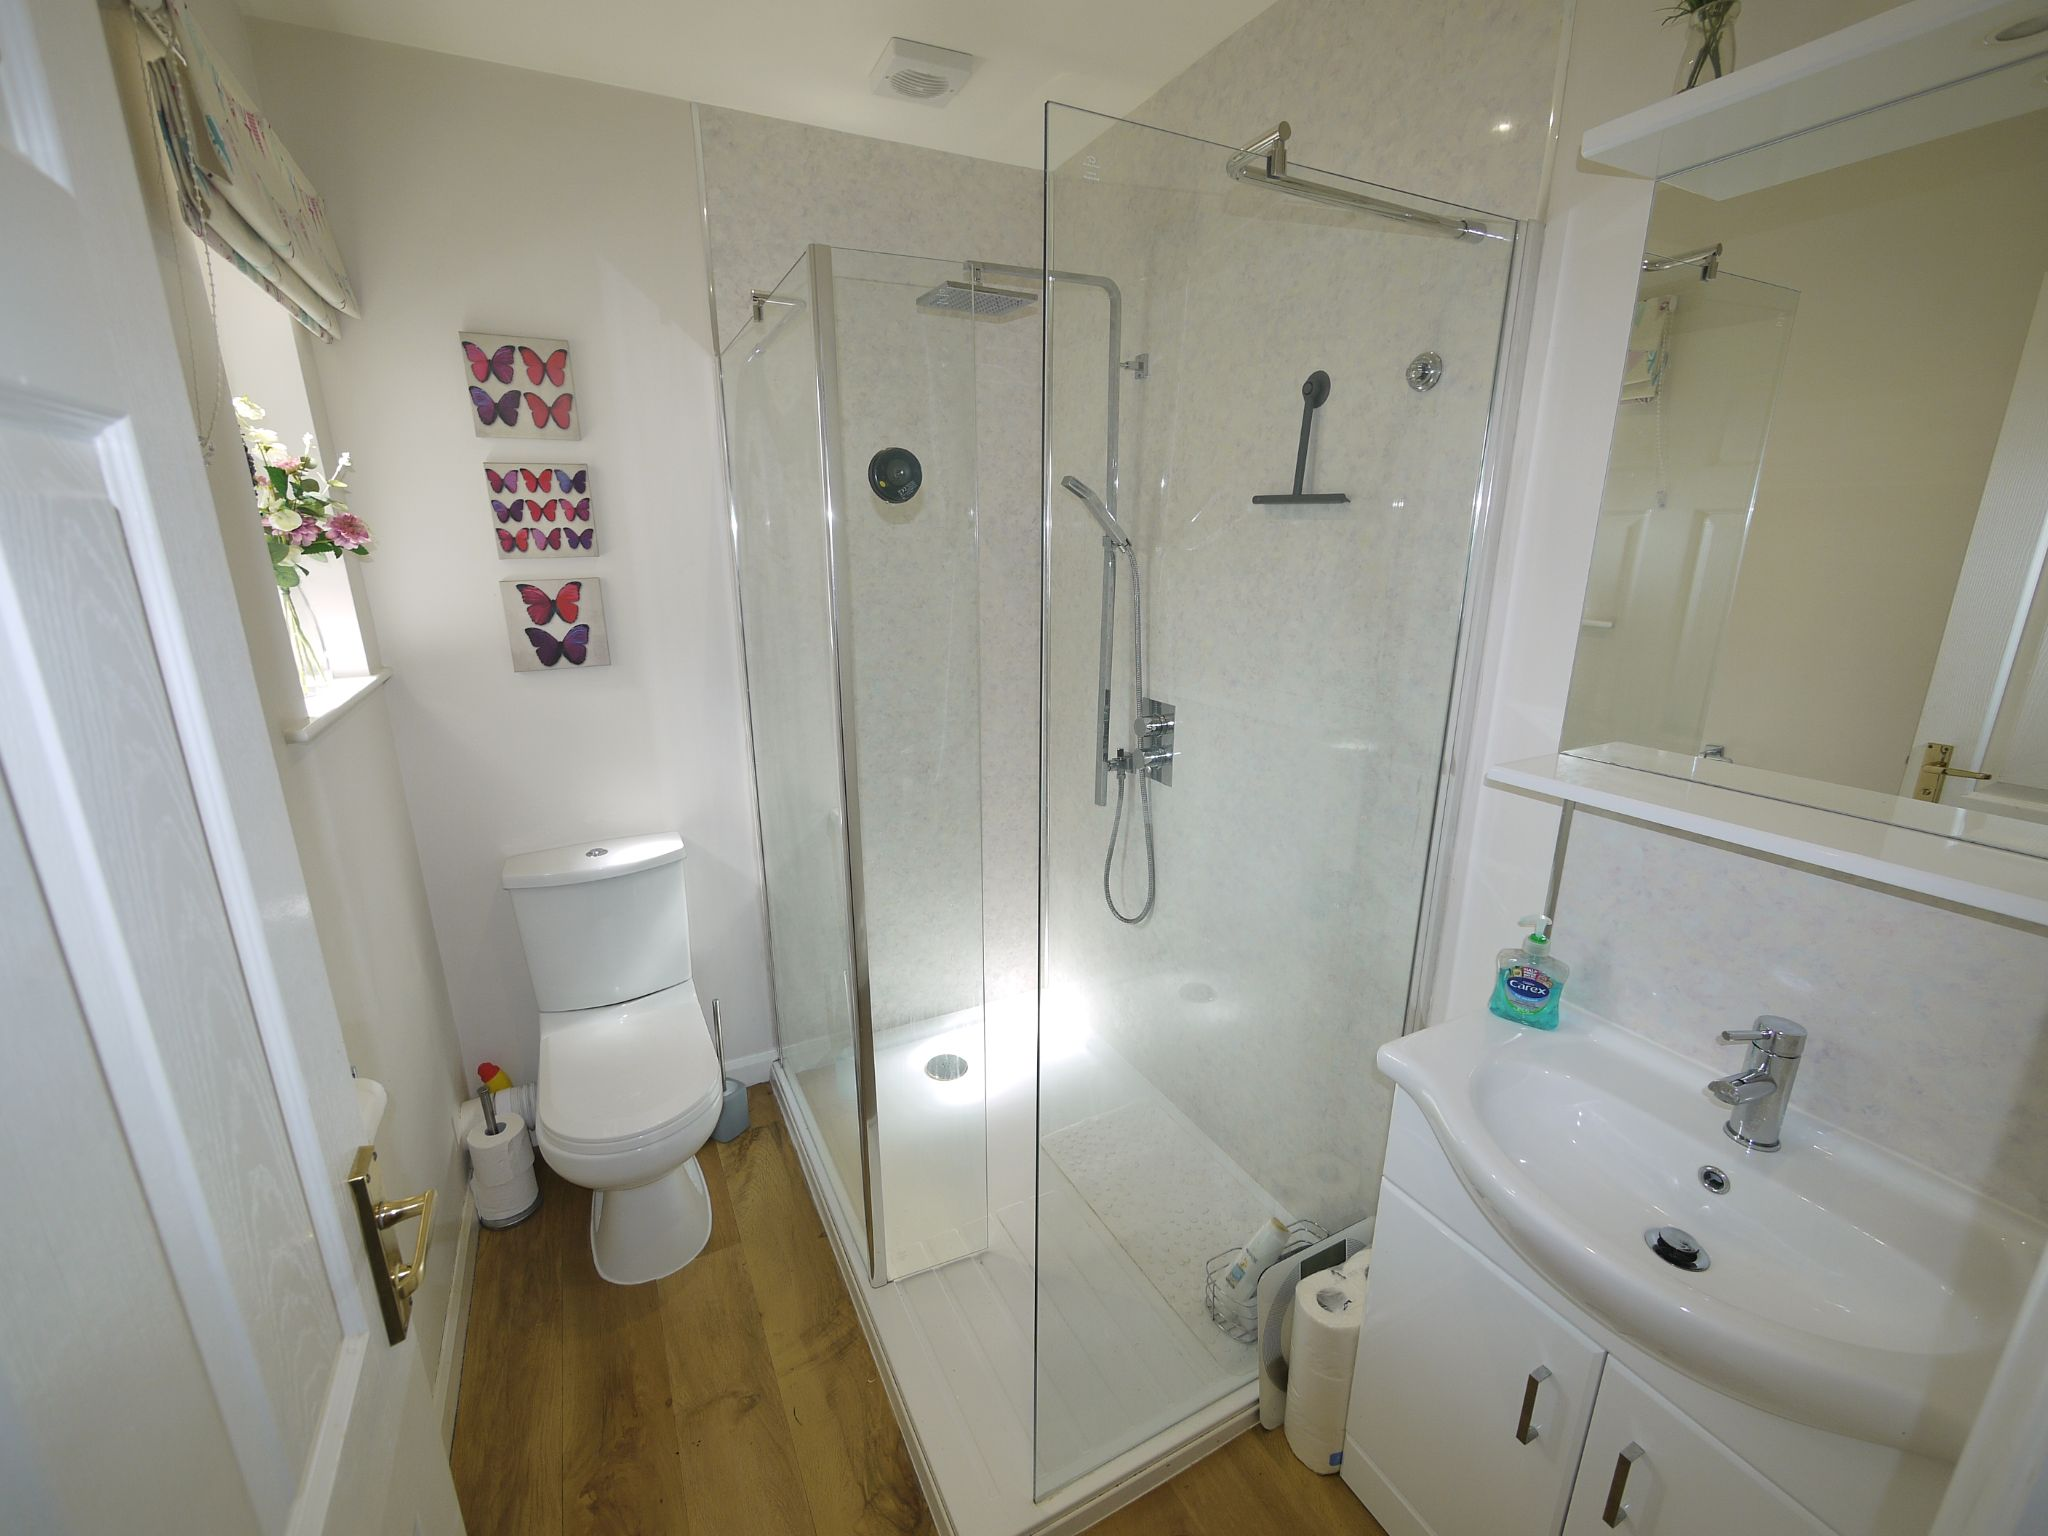 4 bedroom detached house SSTC in Halifax - Photograph 9.